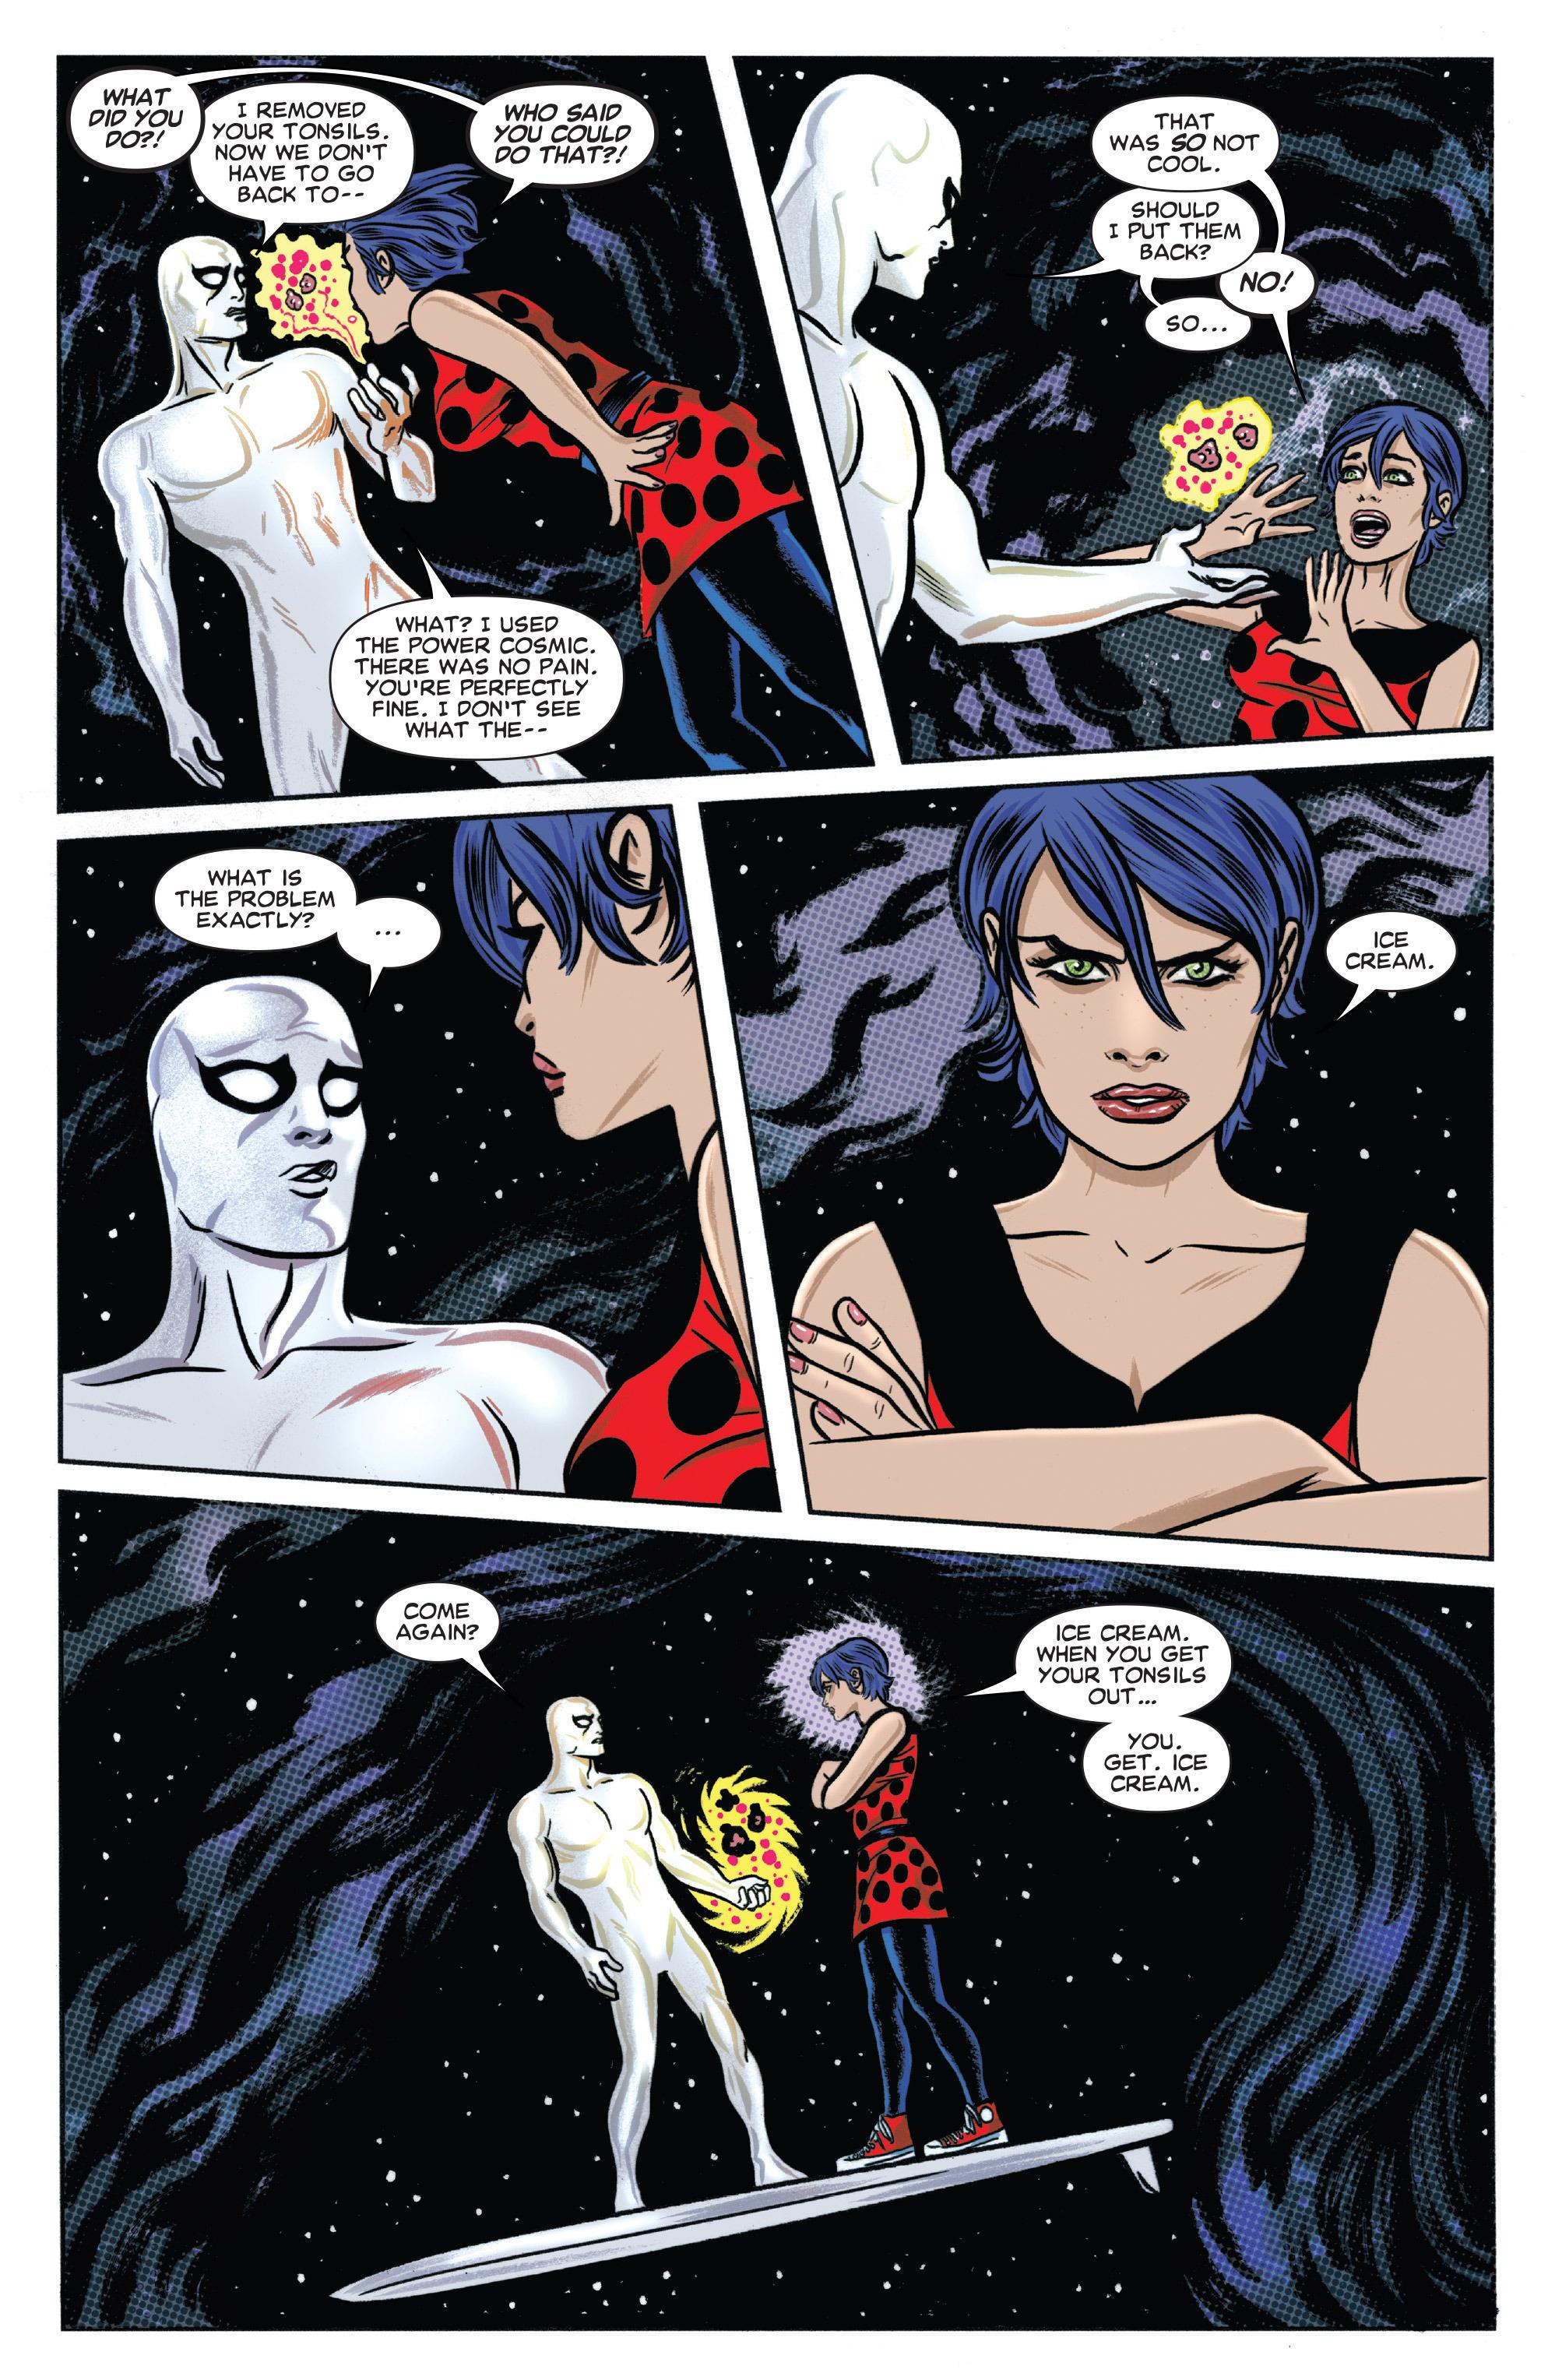 Silver Surfer Worlds Apart review